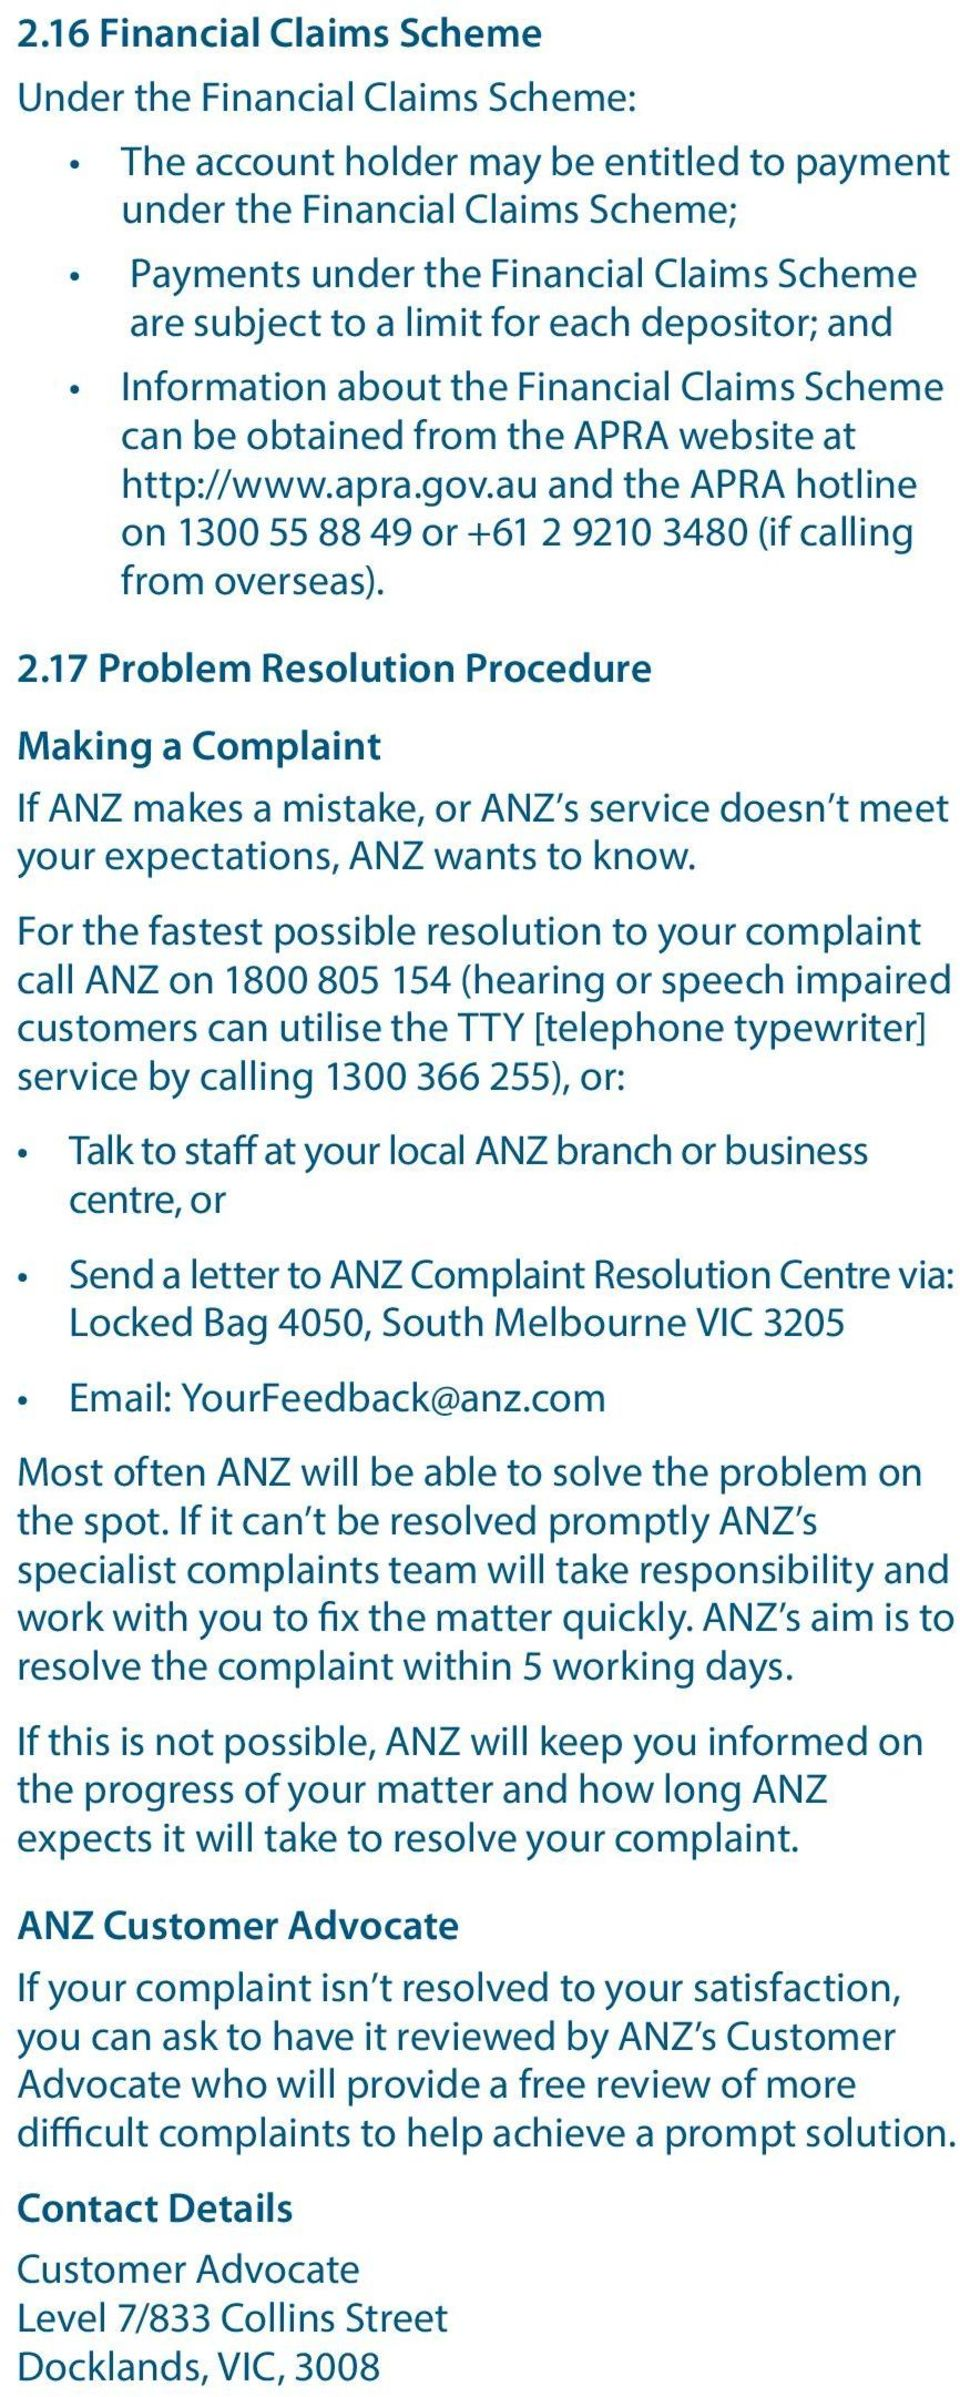 au and the APRA hotline on 1300 55 88 49 or +61 2 9210 3480 (if calling from overseas). 2.17 Problem Resolution Procedure Making a Complaint If ANZ makes a mistake, or ANZ s service doesn t meet your expectations, ANZ wants to know.